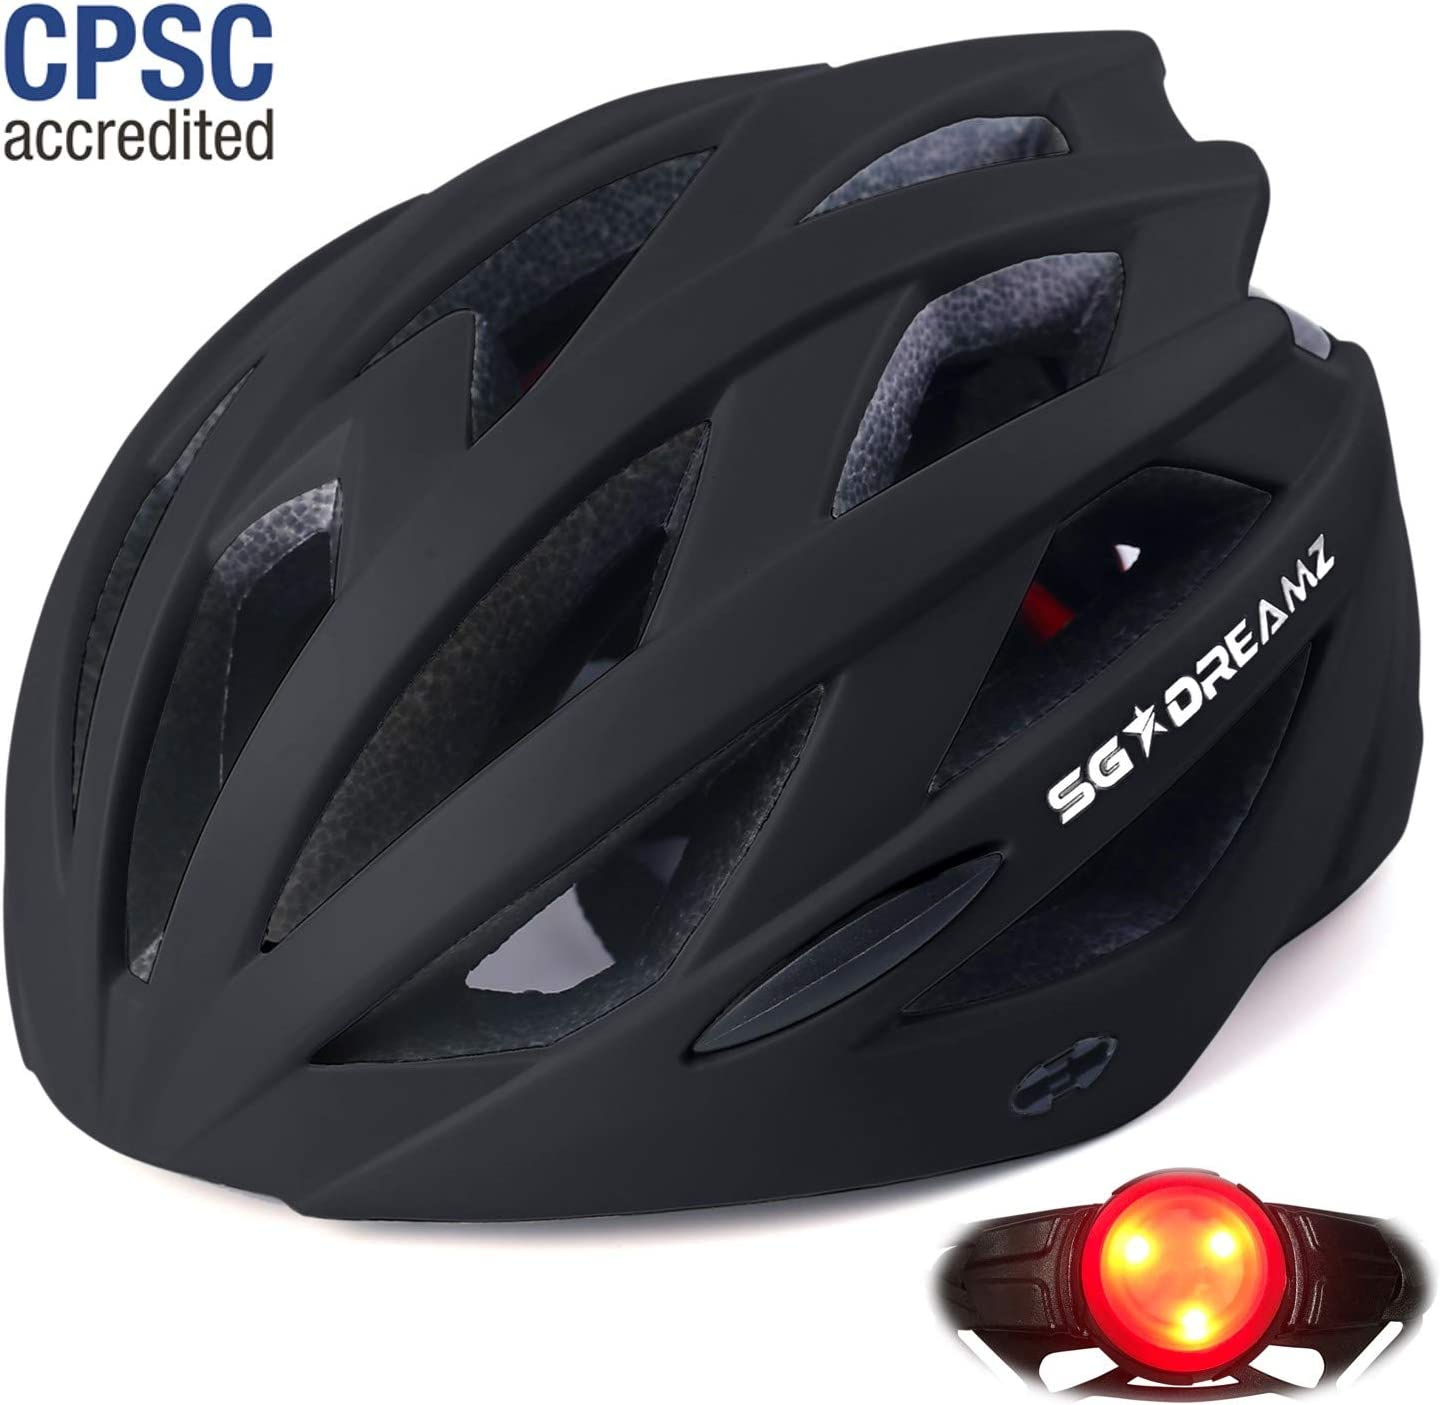 "Adult Helmet with LED Light and Detachable Visor - Bicycle Cycling Mountain Bike Helmet for Men and Women - Adjustable Dial for Head Size 21.6"" to 24"" (M to L) - CPSC Certified"